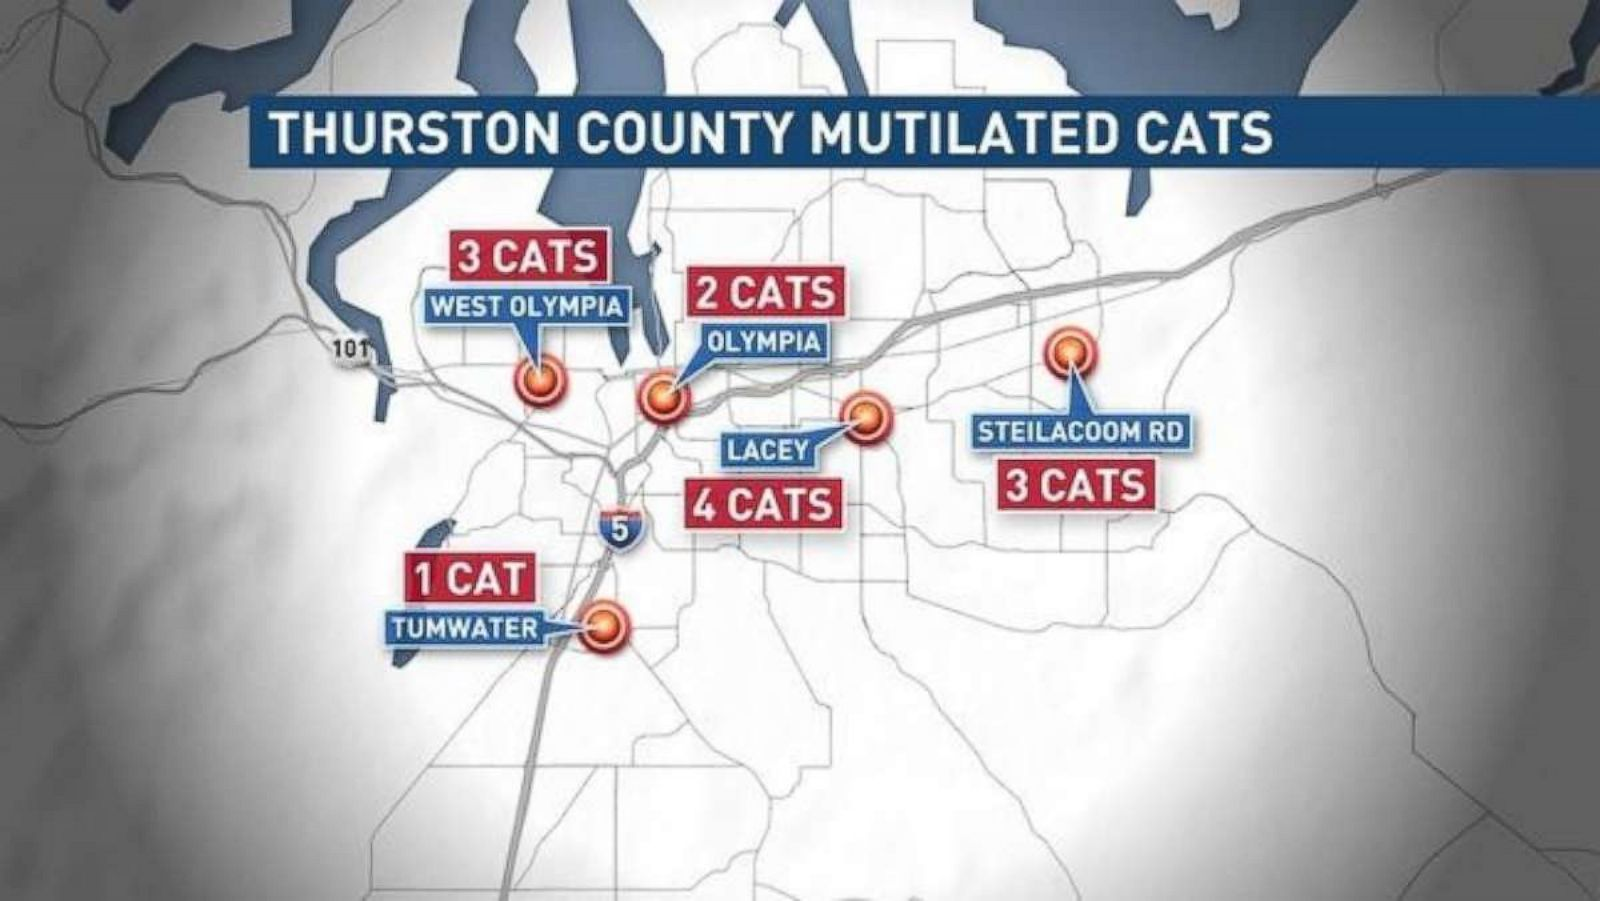 Serial cat killer? Mutilated cat believed to be 13th in string of